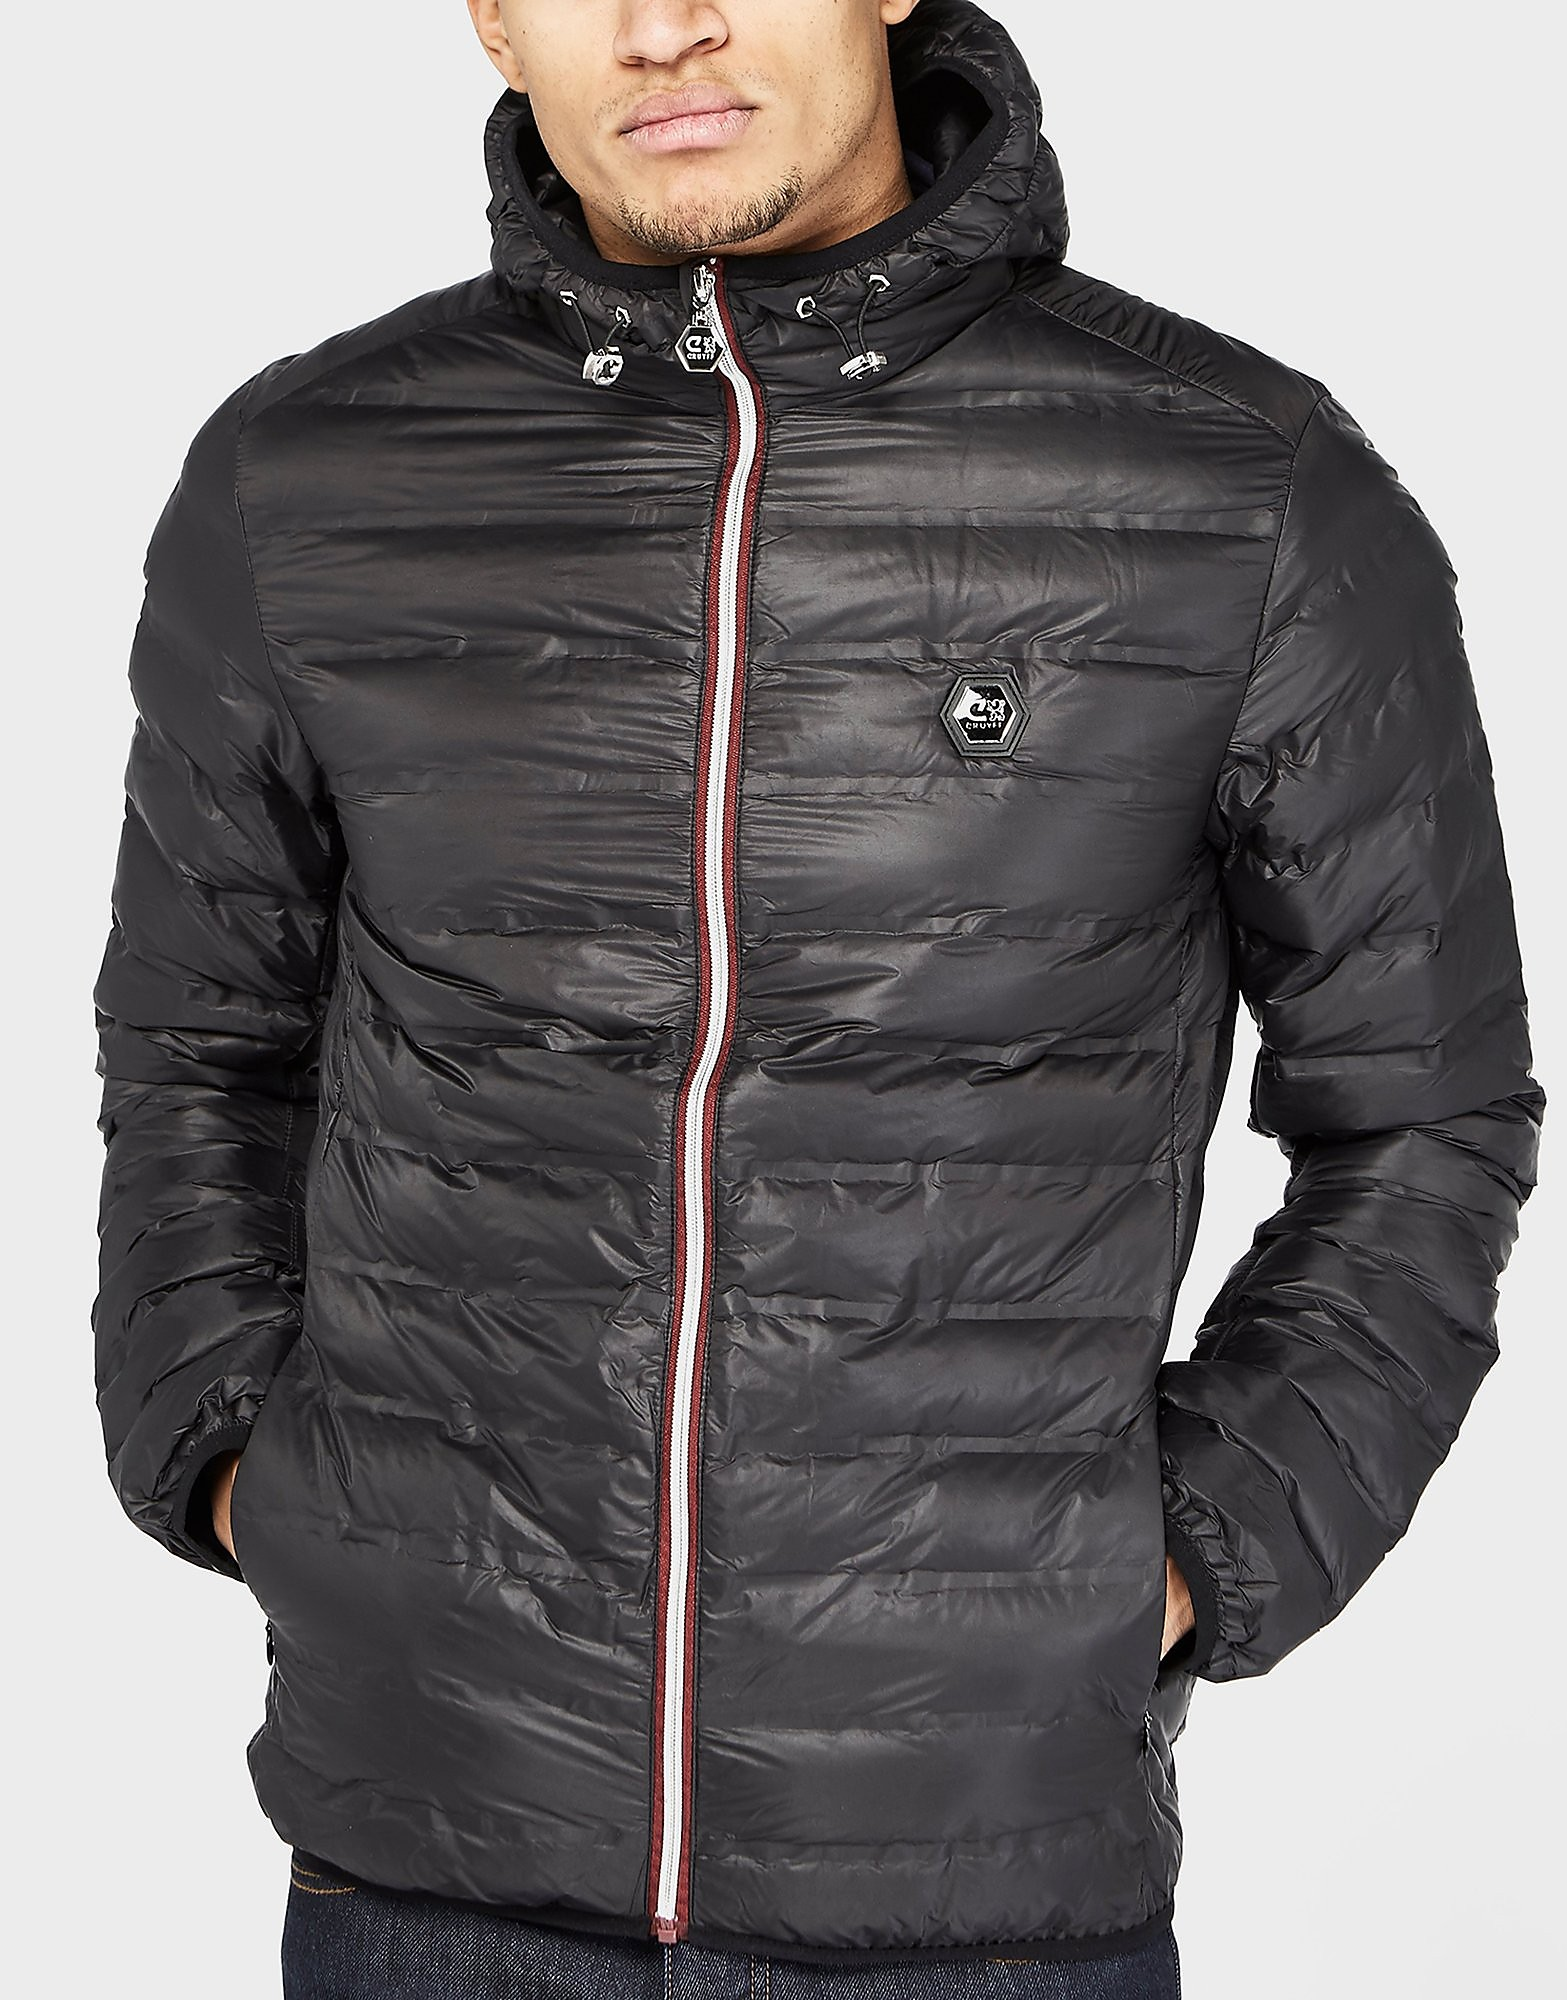 Cruyff Carrasco Bubble Jacket